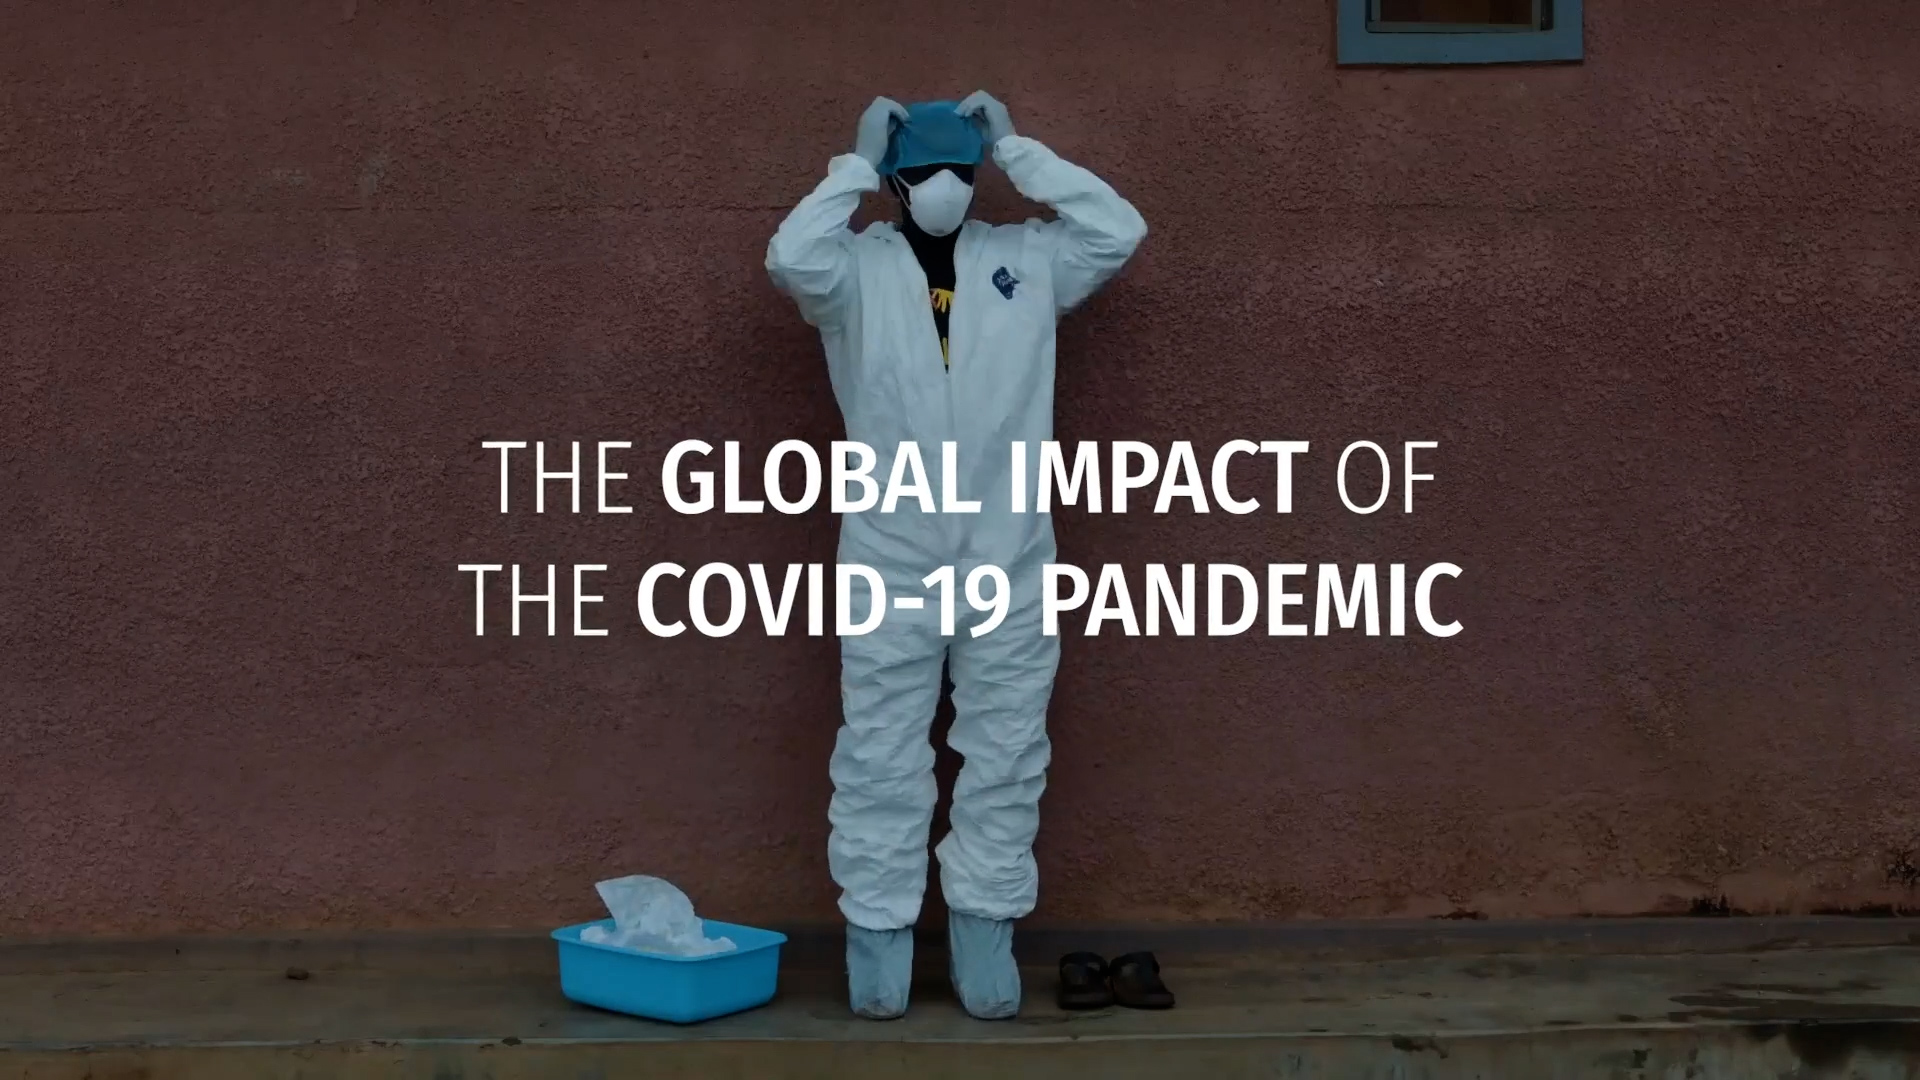 A screenshot of a video that shows a frontline health worker wearing a white suit and mask with light blue gloves and booties. Text is overlaid that says